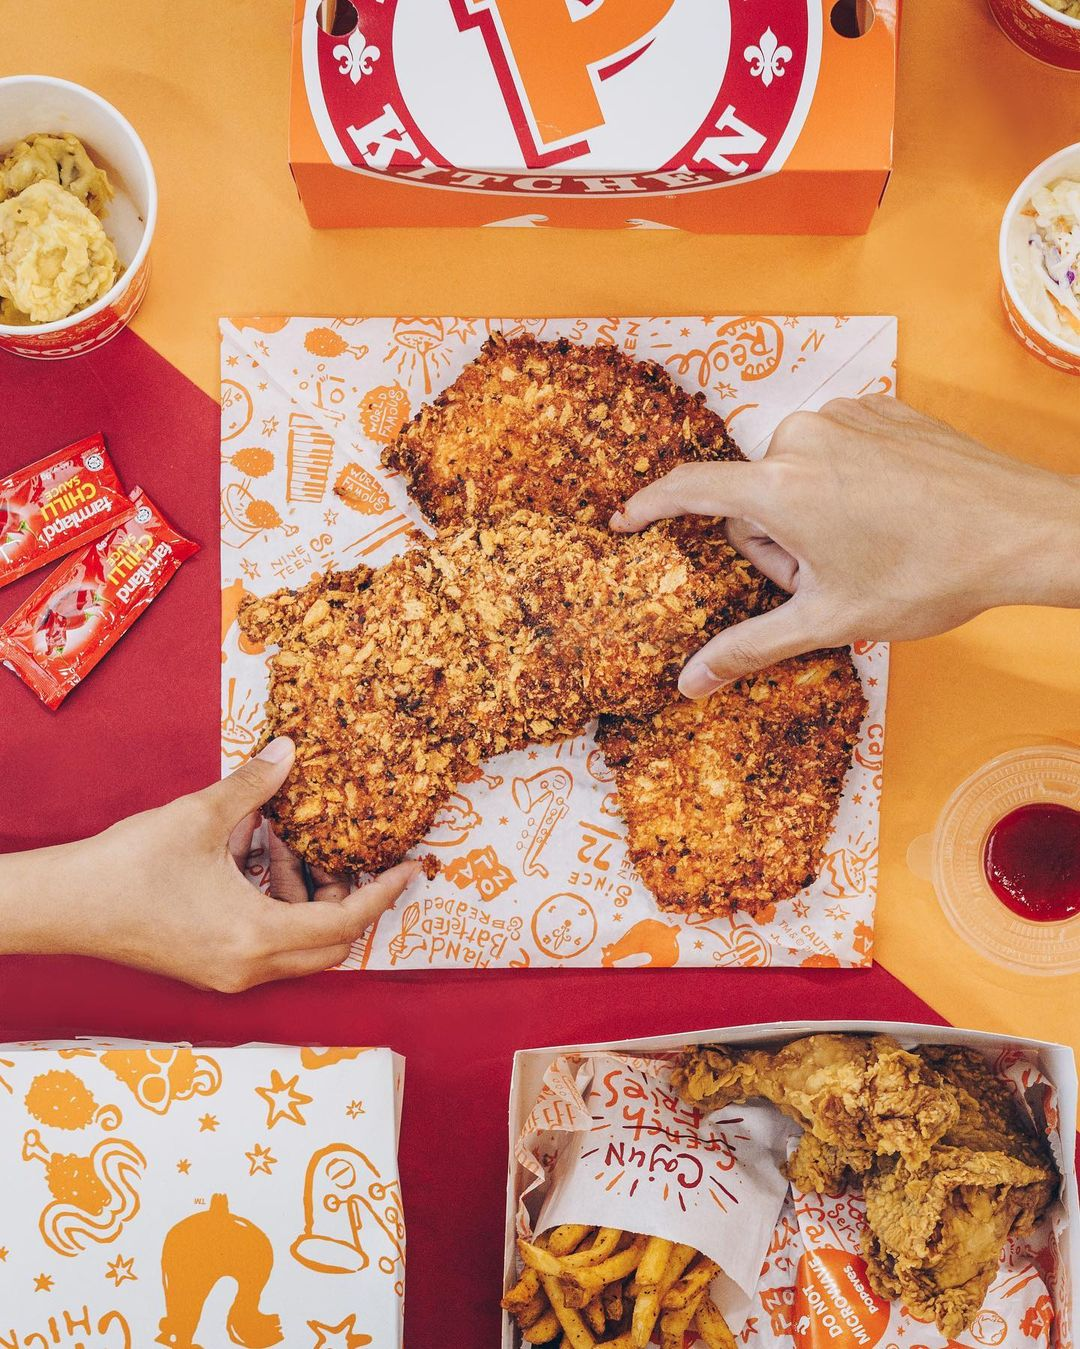 Popeyes Spicy XL Crispy Chicken Cutlet